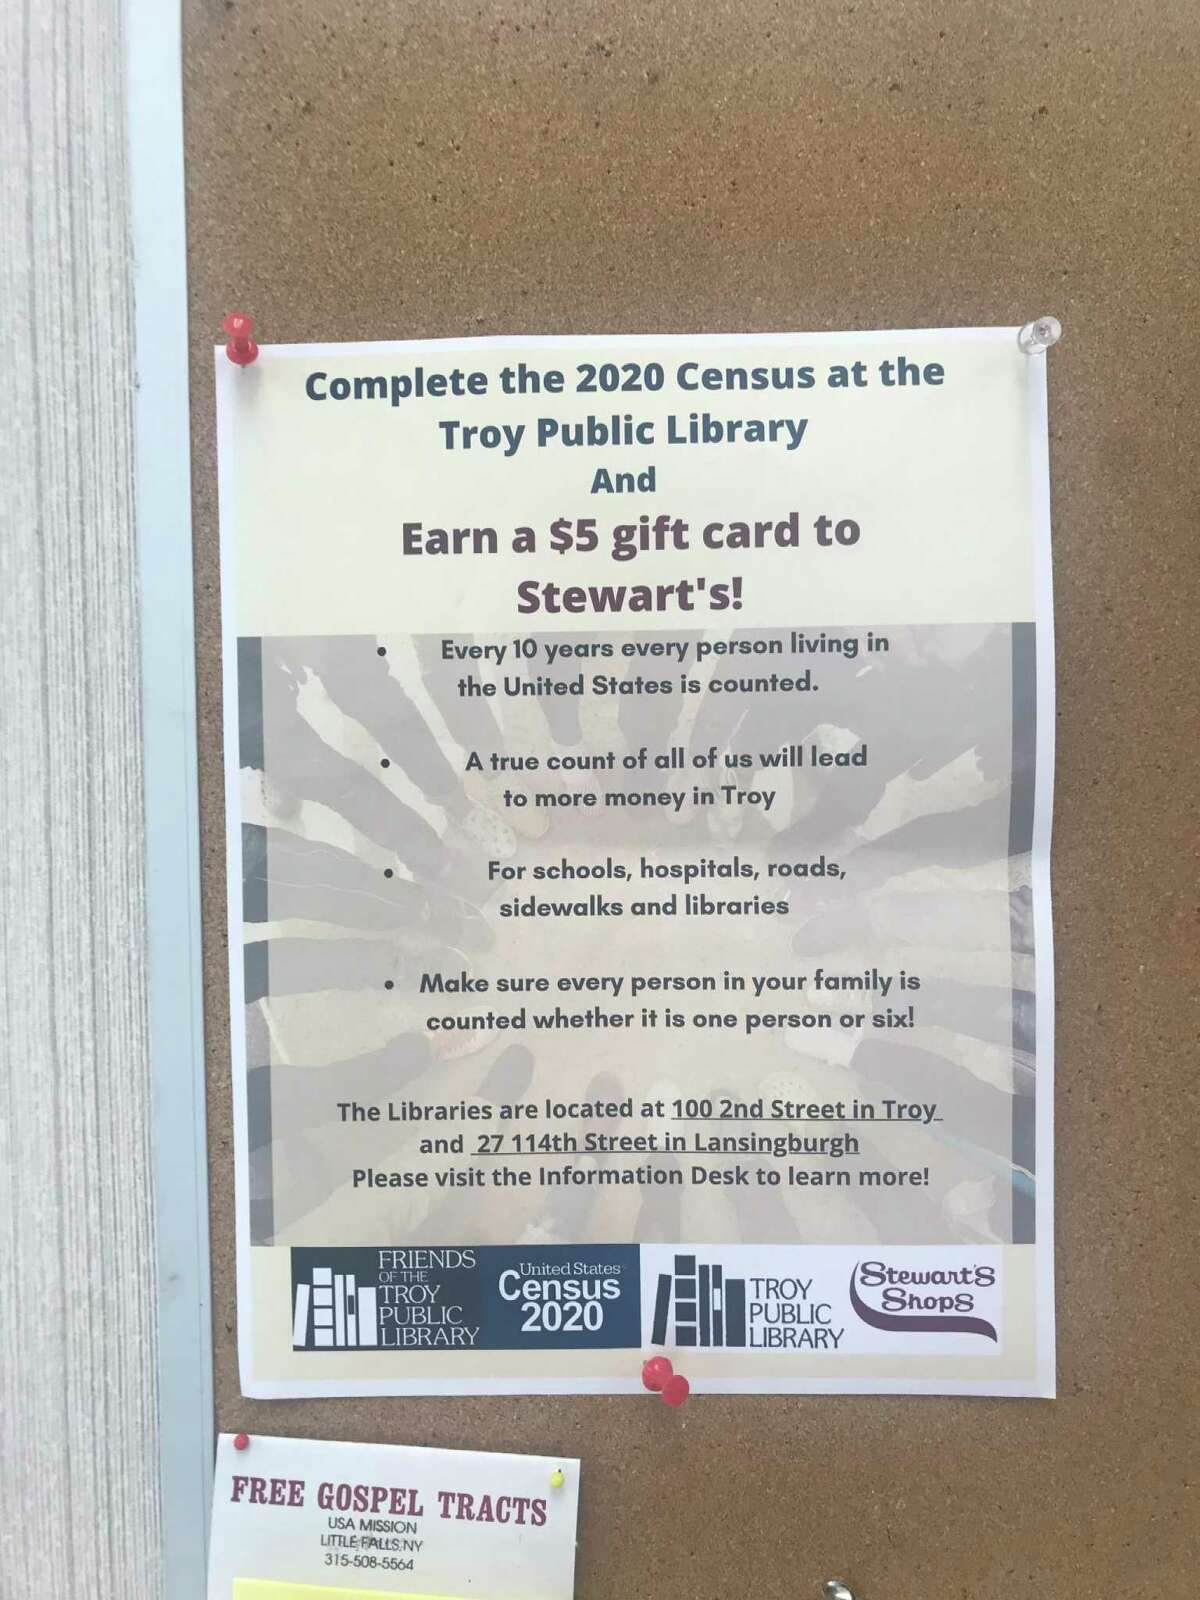 Flyer posted at the Stewart's Shop at 112th Street and Second Avenue in Troy, N.Y. promoting a $5 gift card for completing the 2020 Census questionnaire.